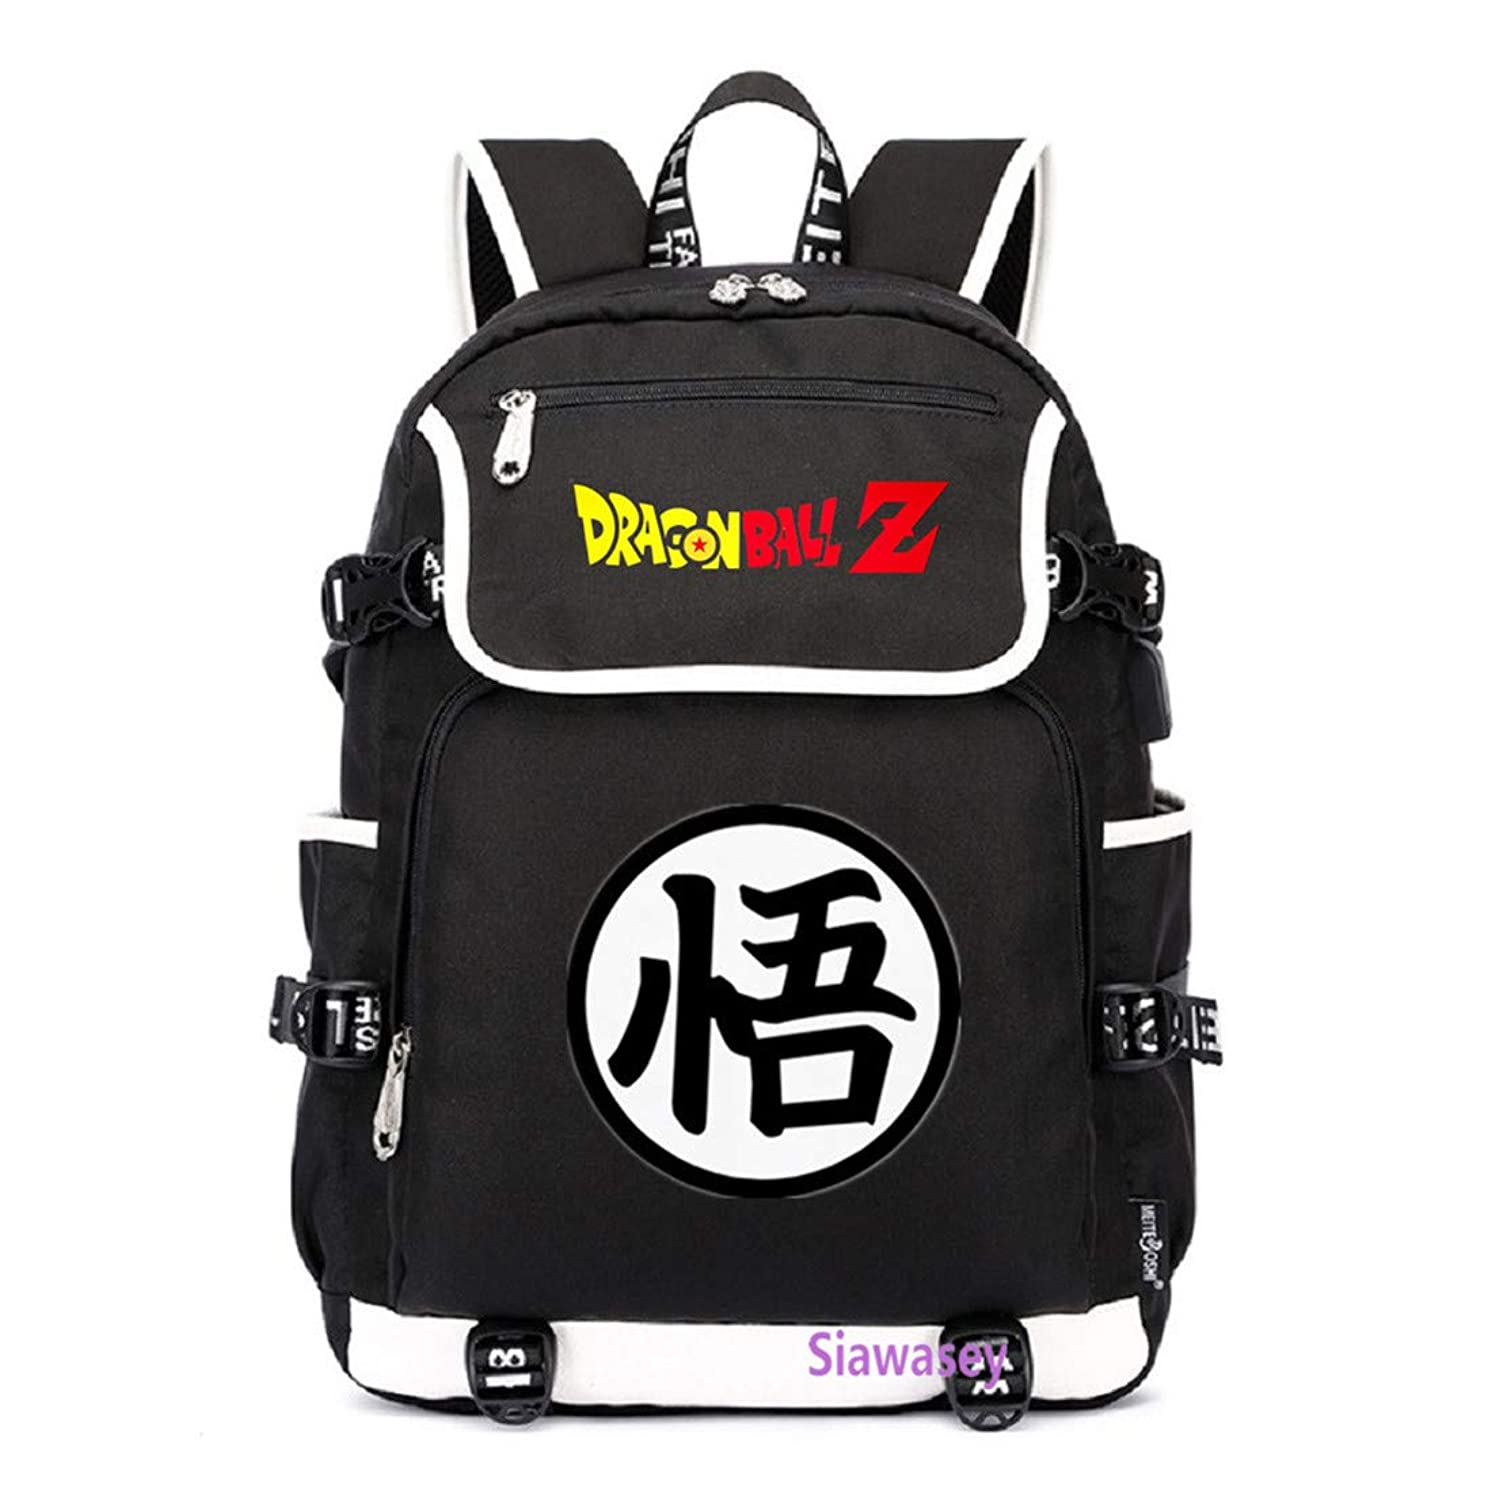 Siawasey Anime Dragon Ball Z Cosplay Goku Backpack Daypack Bookbag Laptop School Bag with USB Charging Port